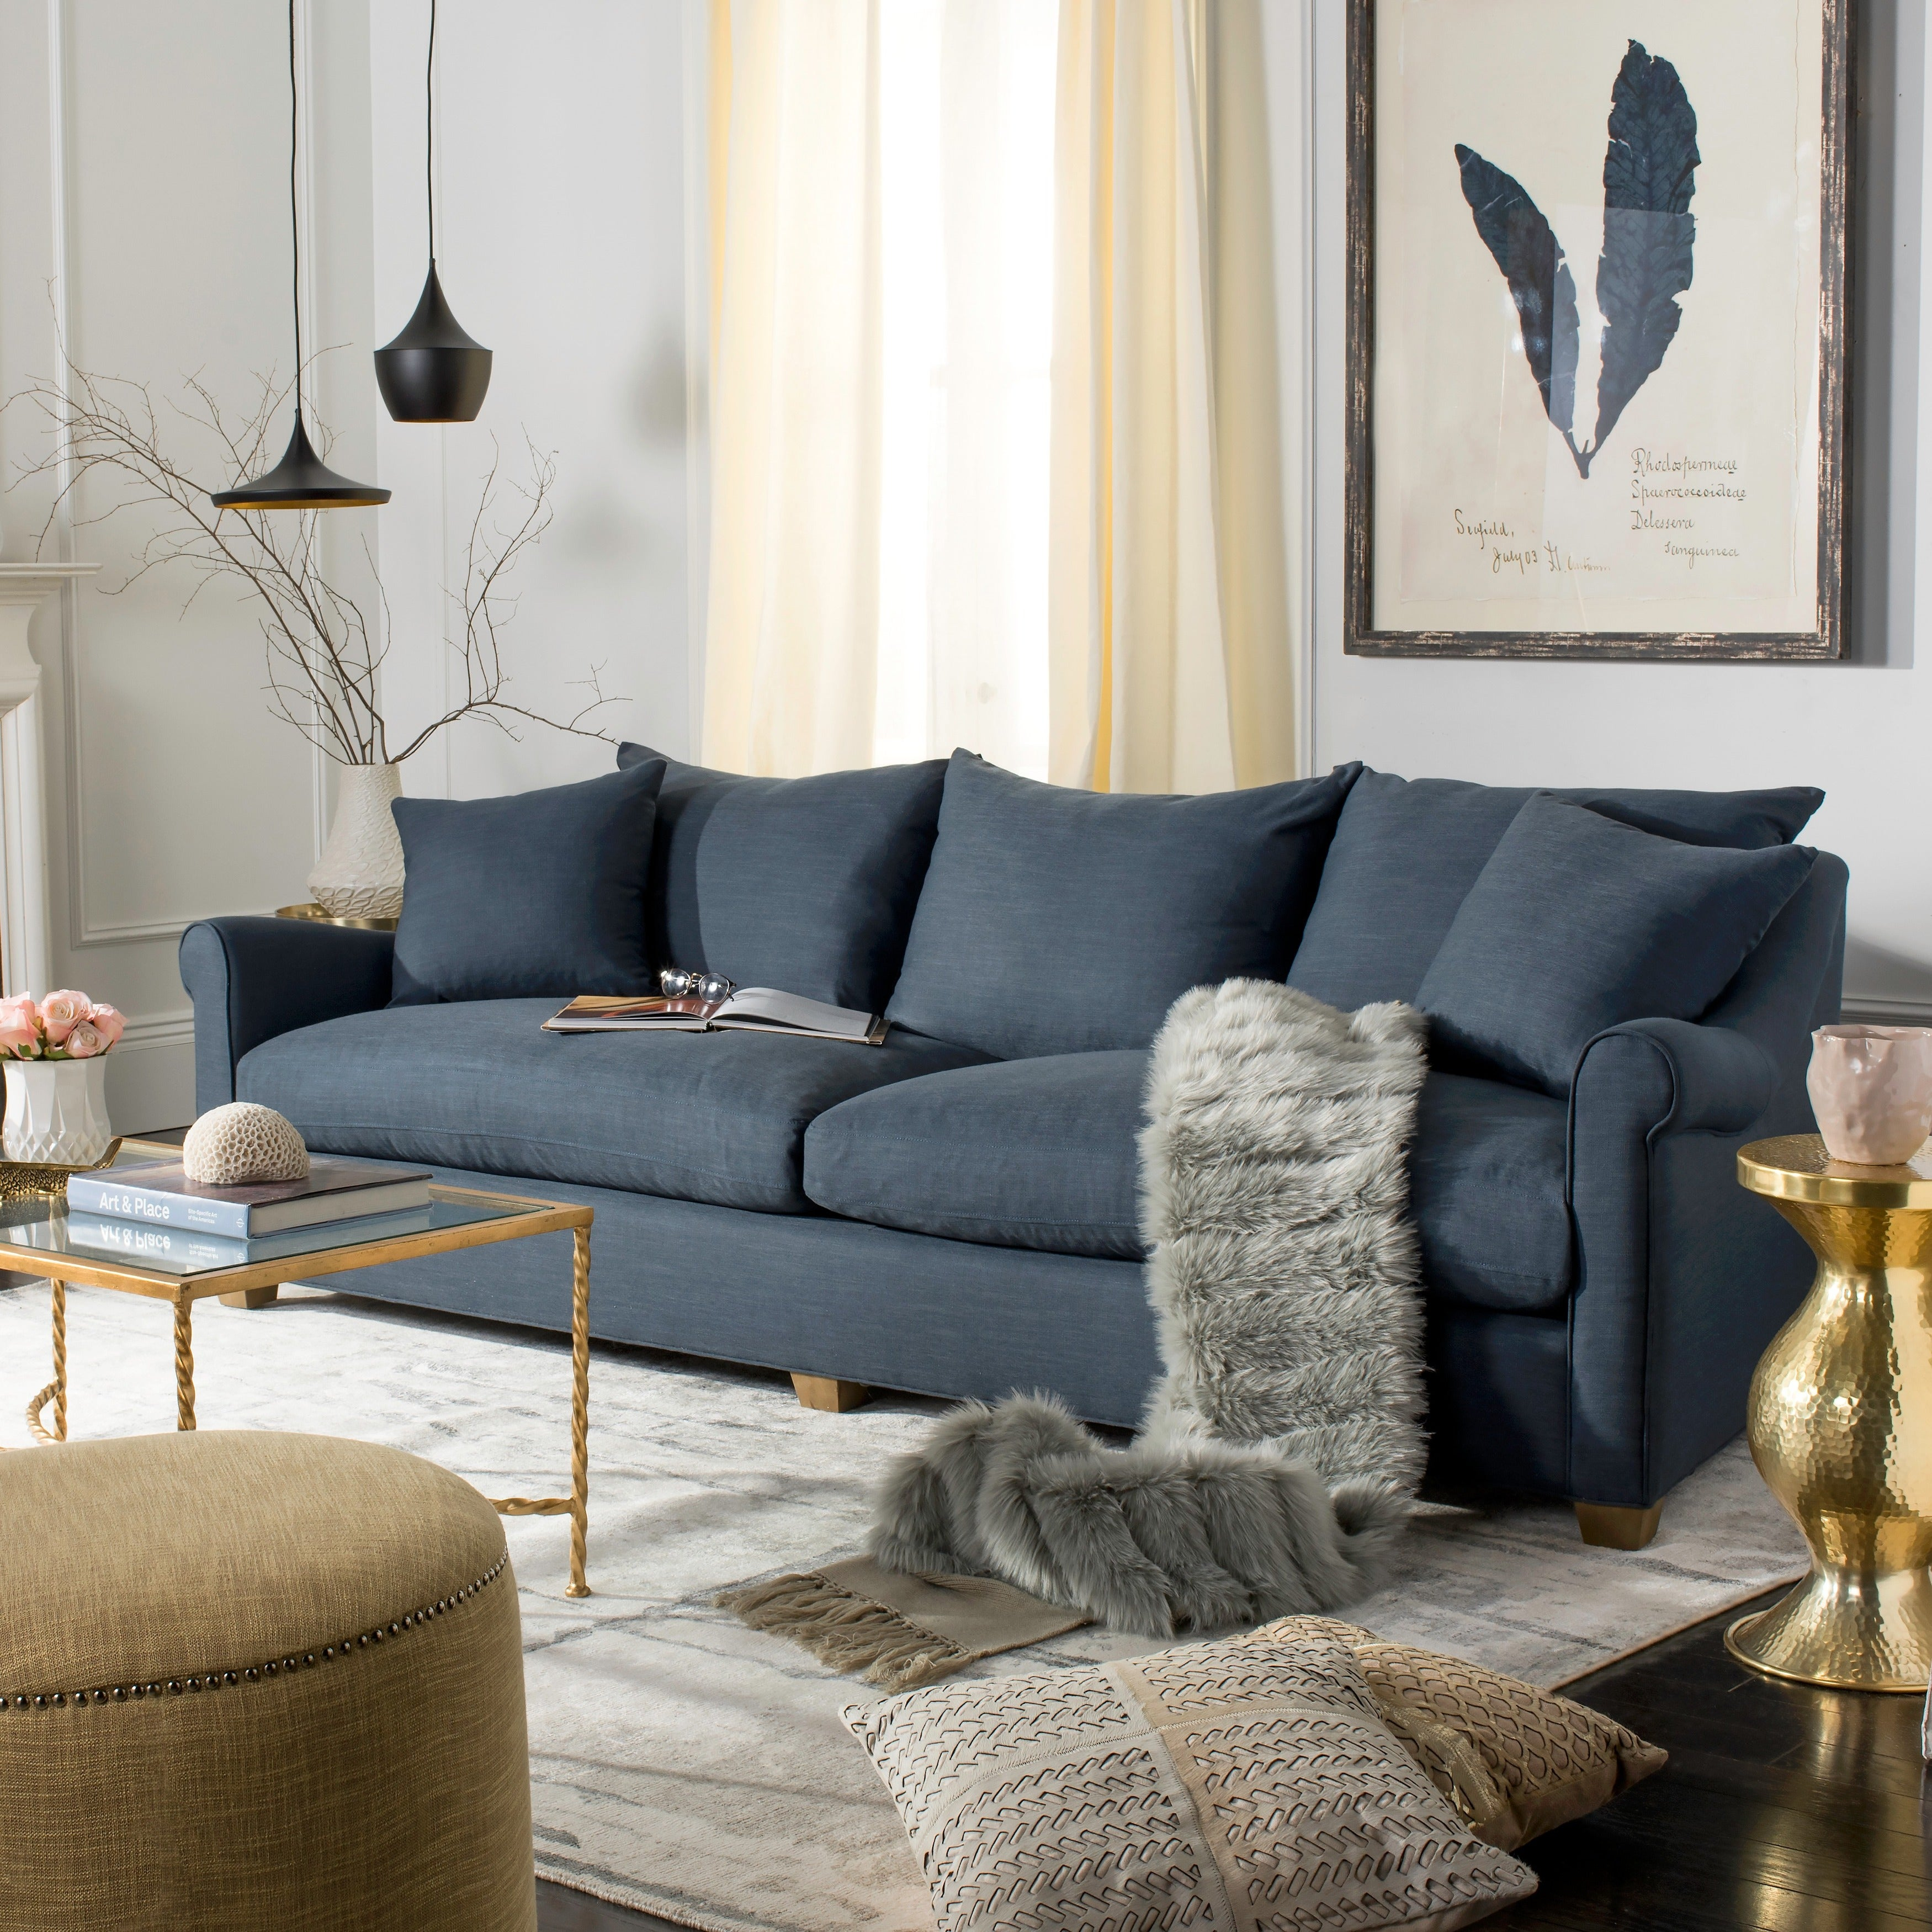 Picture of: Safavieh Couture High Line Collection Fraiser Oak Navy Blue Sofa On Sale Overstock 11178836